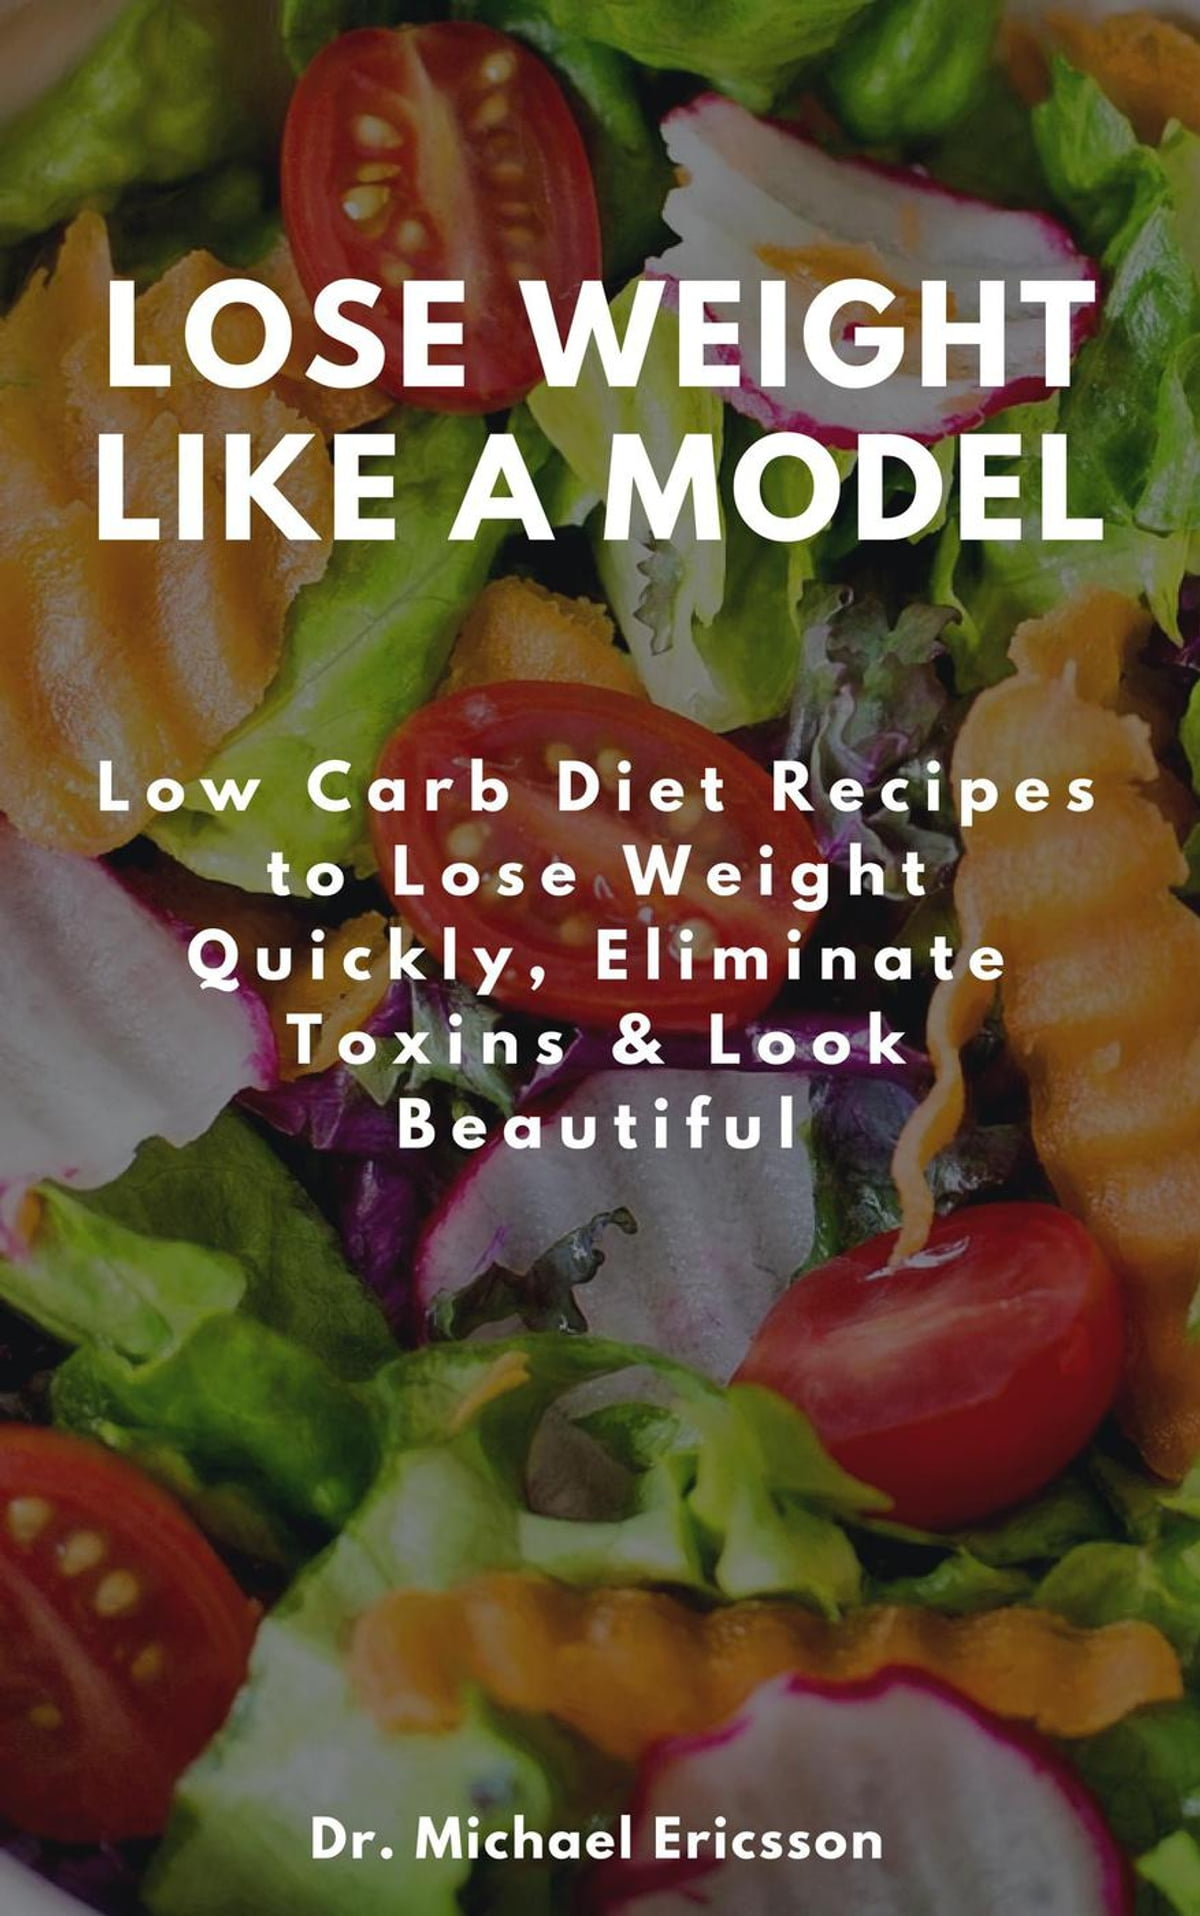 Lose Weight Like a Model: Low Carb Diet Recipes to Lose Weight Quickly,  Eliminate Toxins & Look Beautiful ebook by Dr  Michael Ericsson - Rakuten  Kobo